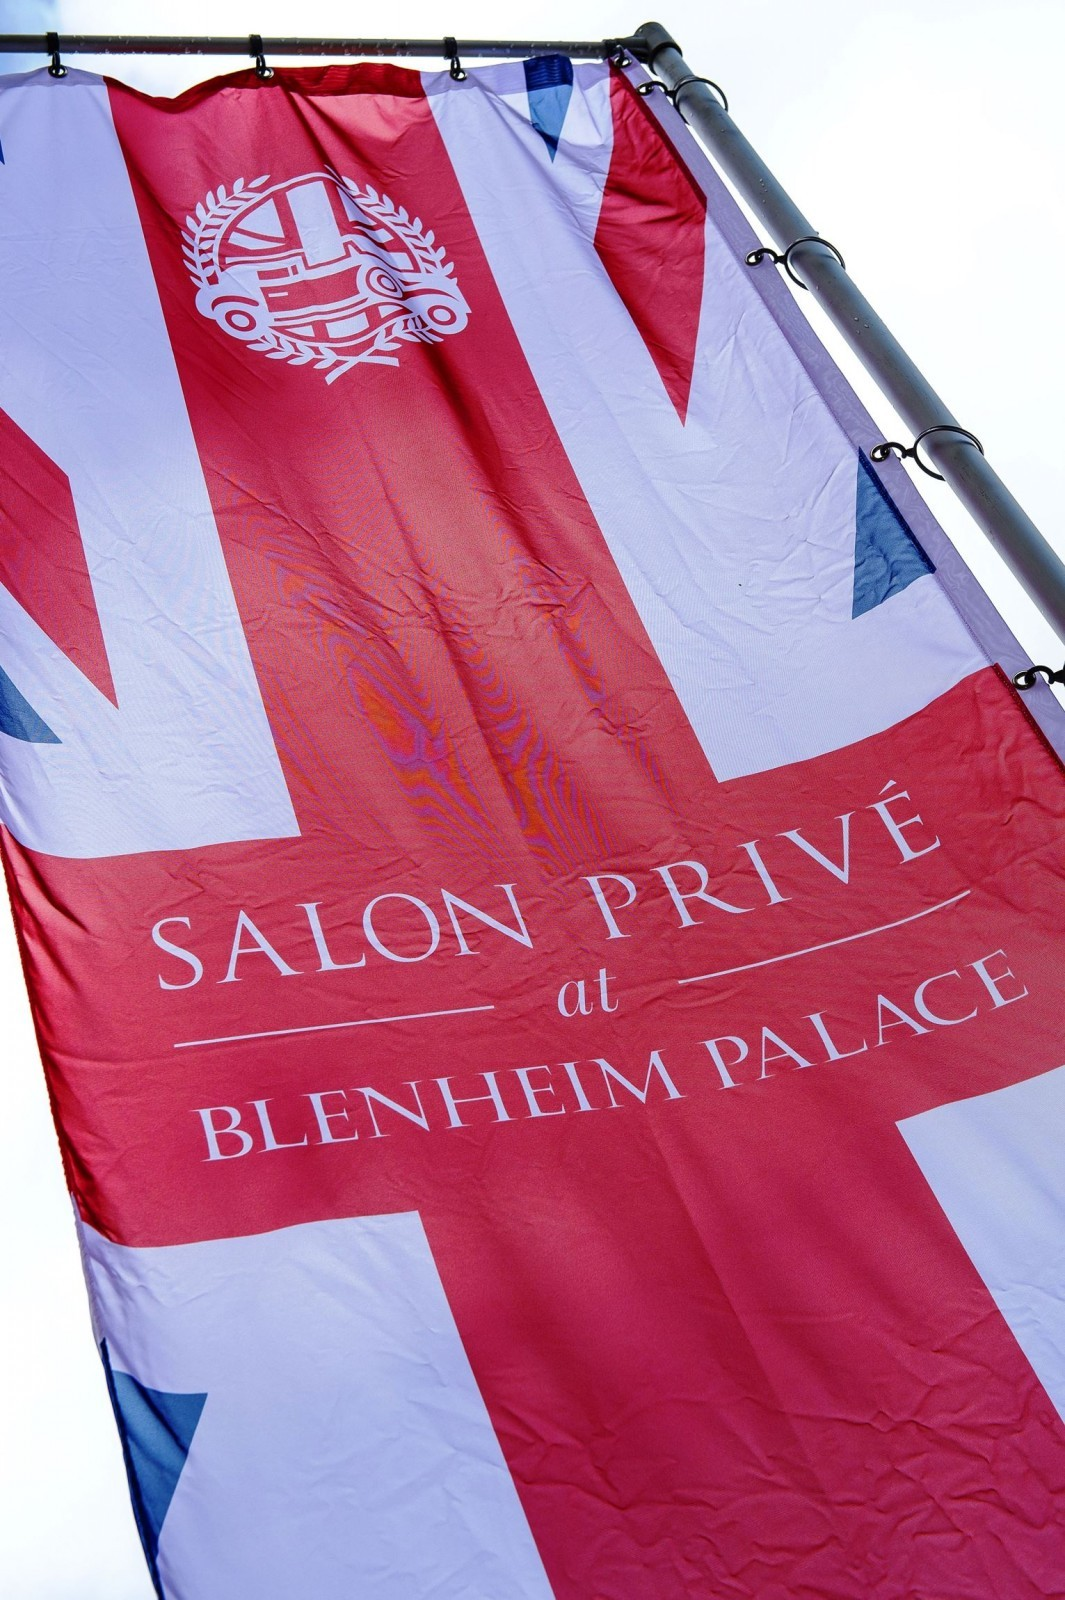 2015 Salon Prive Preview 109